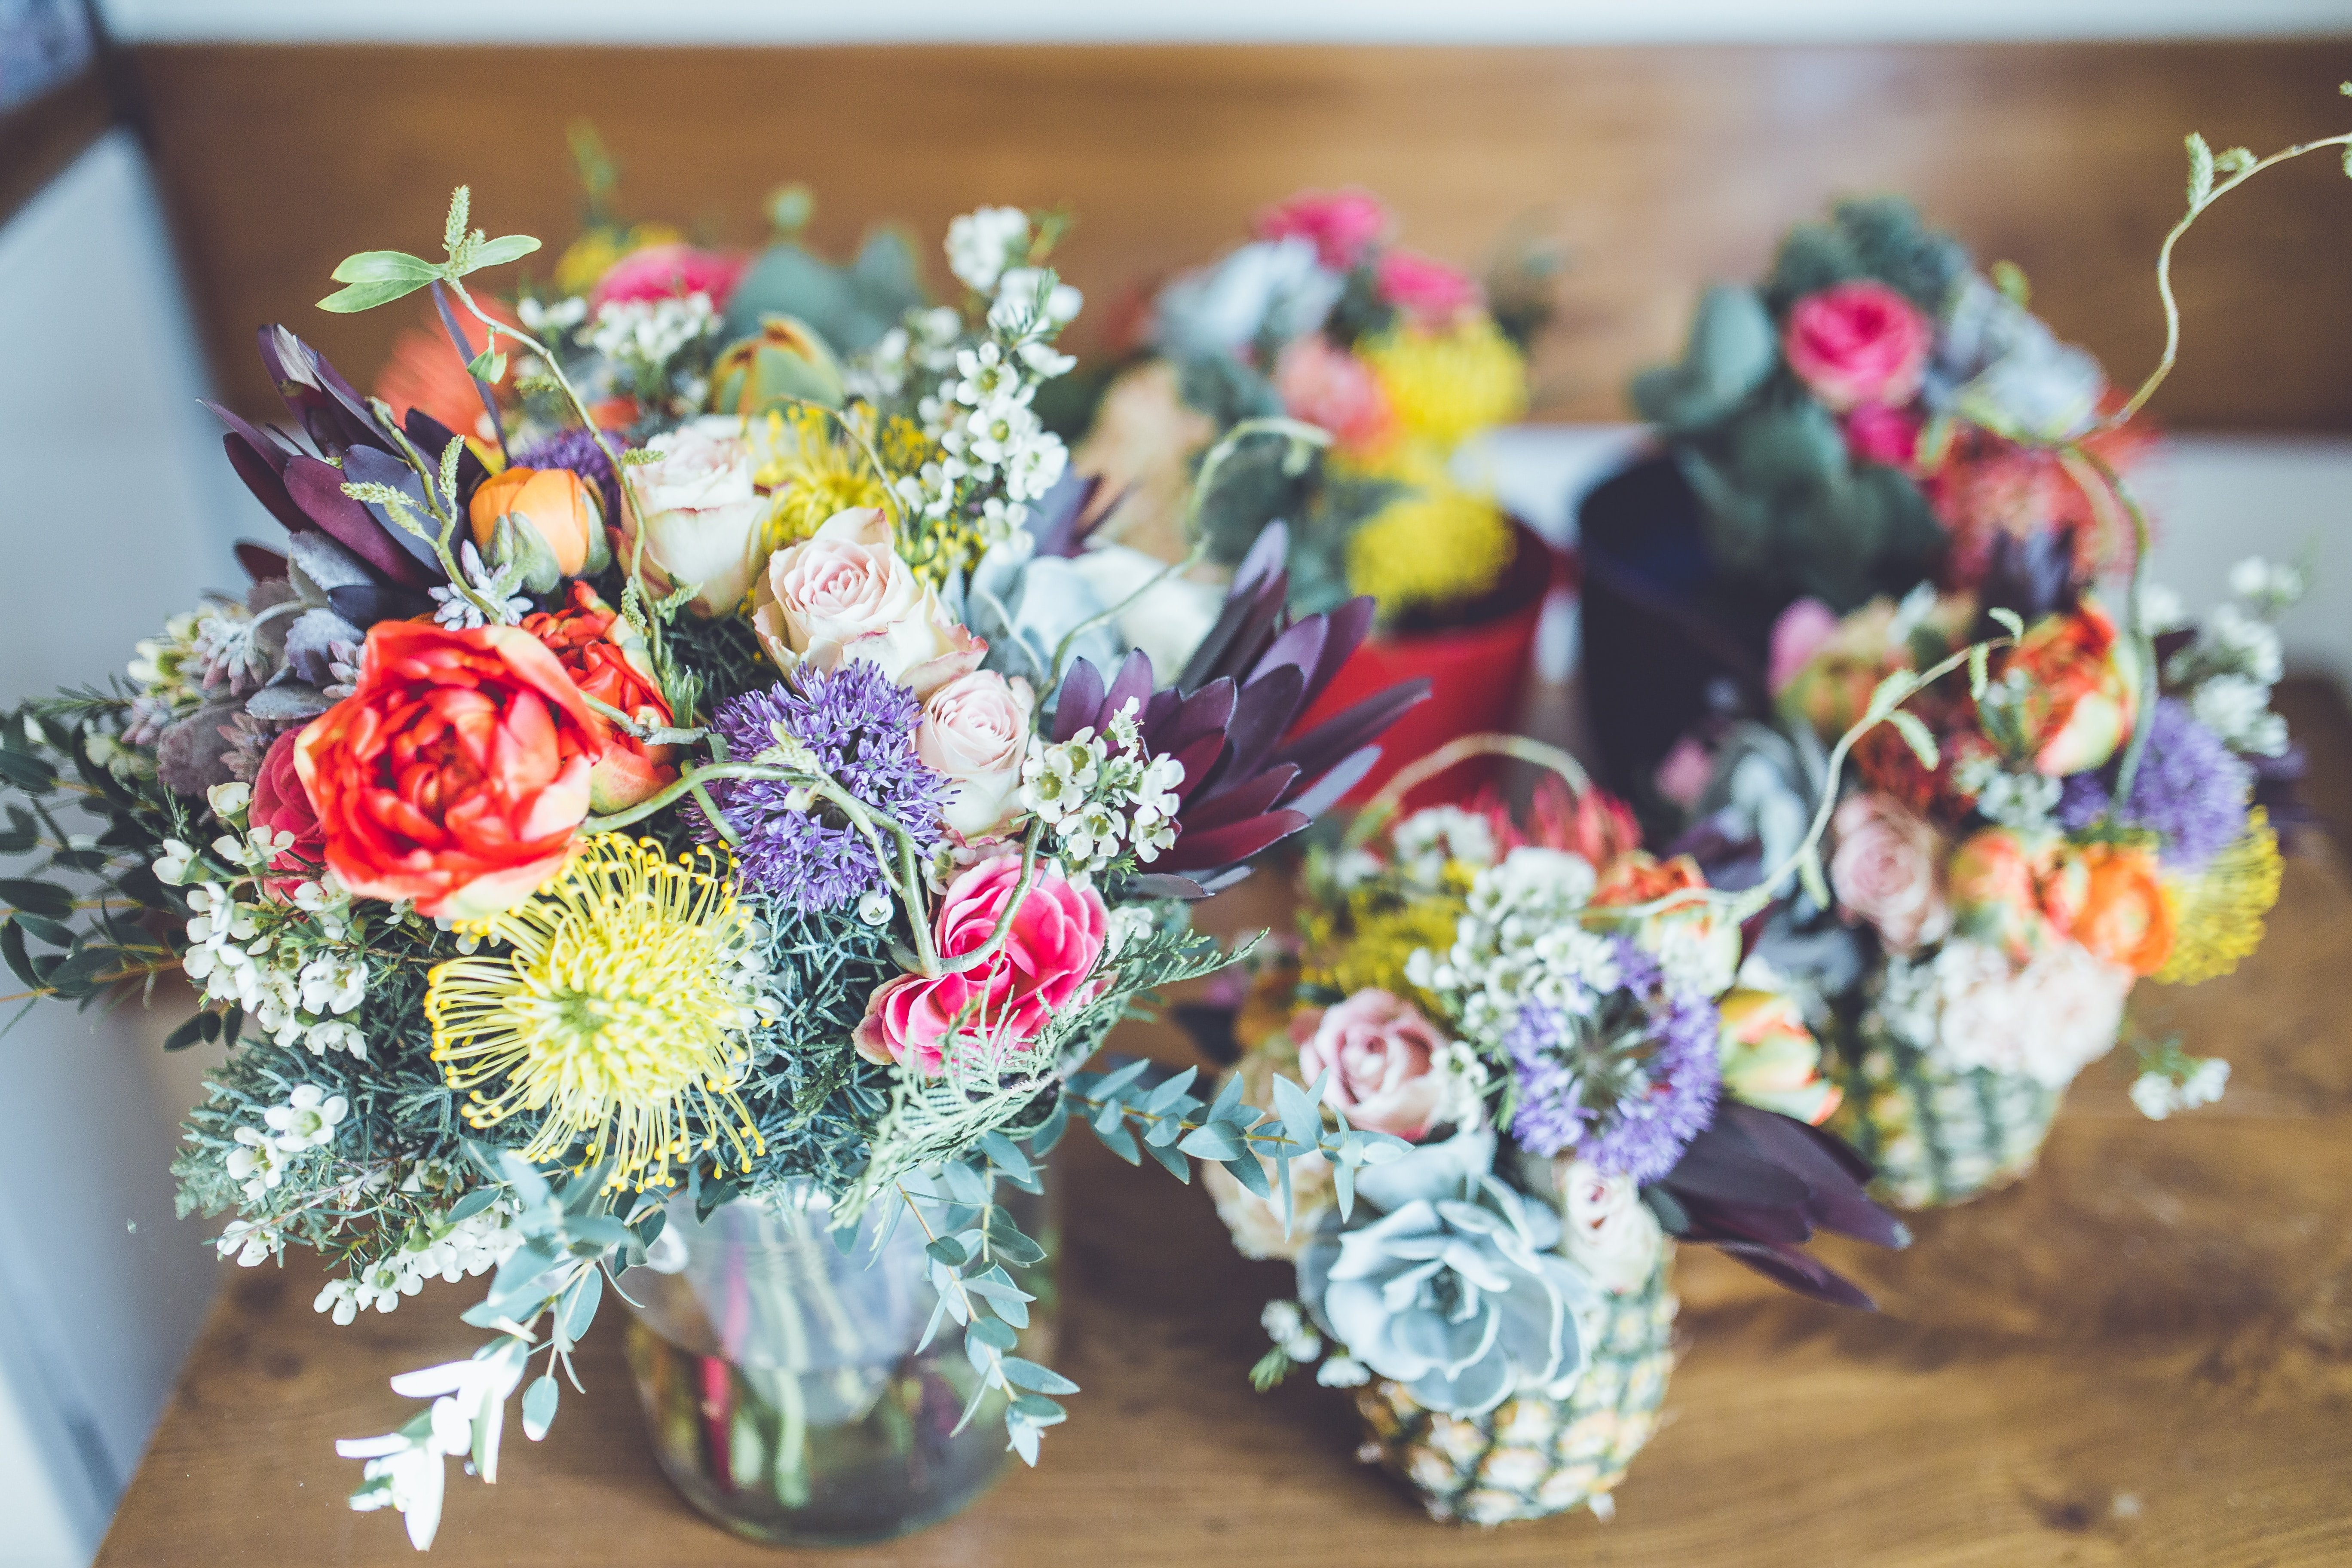 Beautiful flowers in vases | Source: Unsplash.com